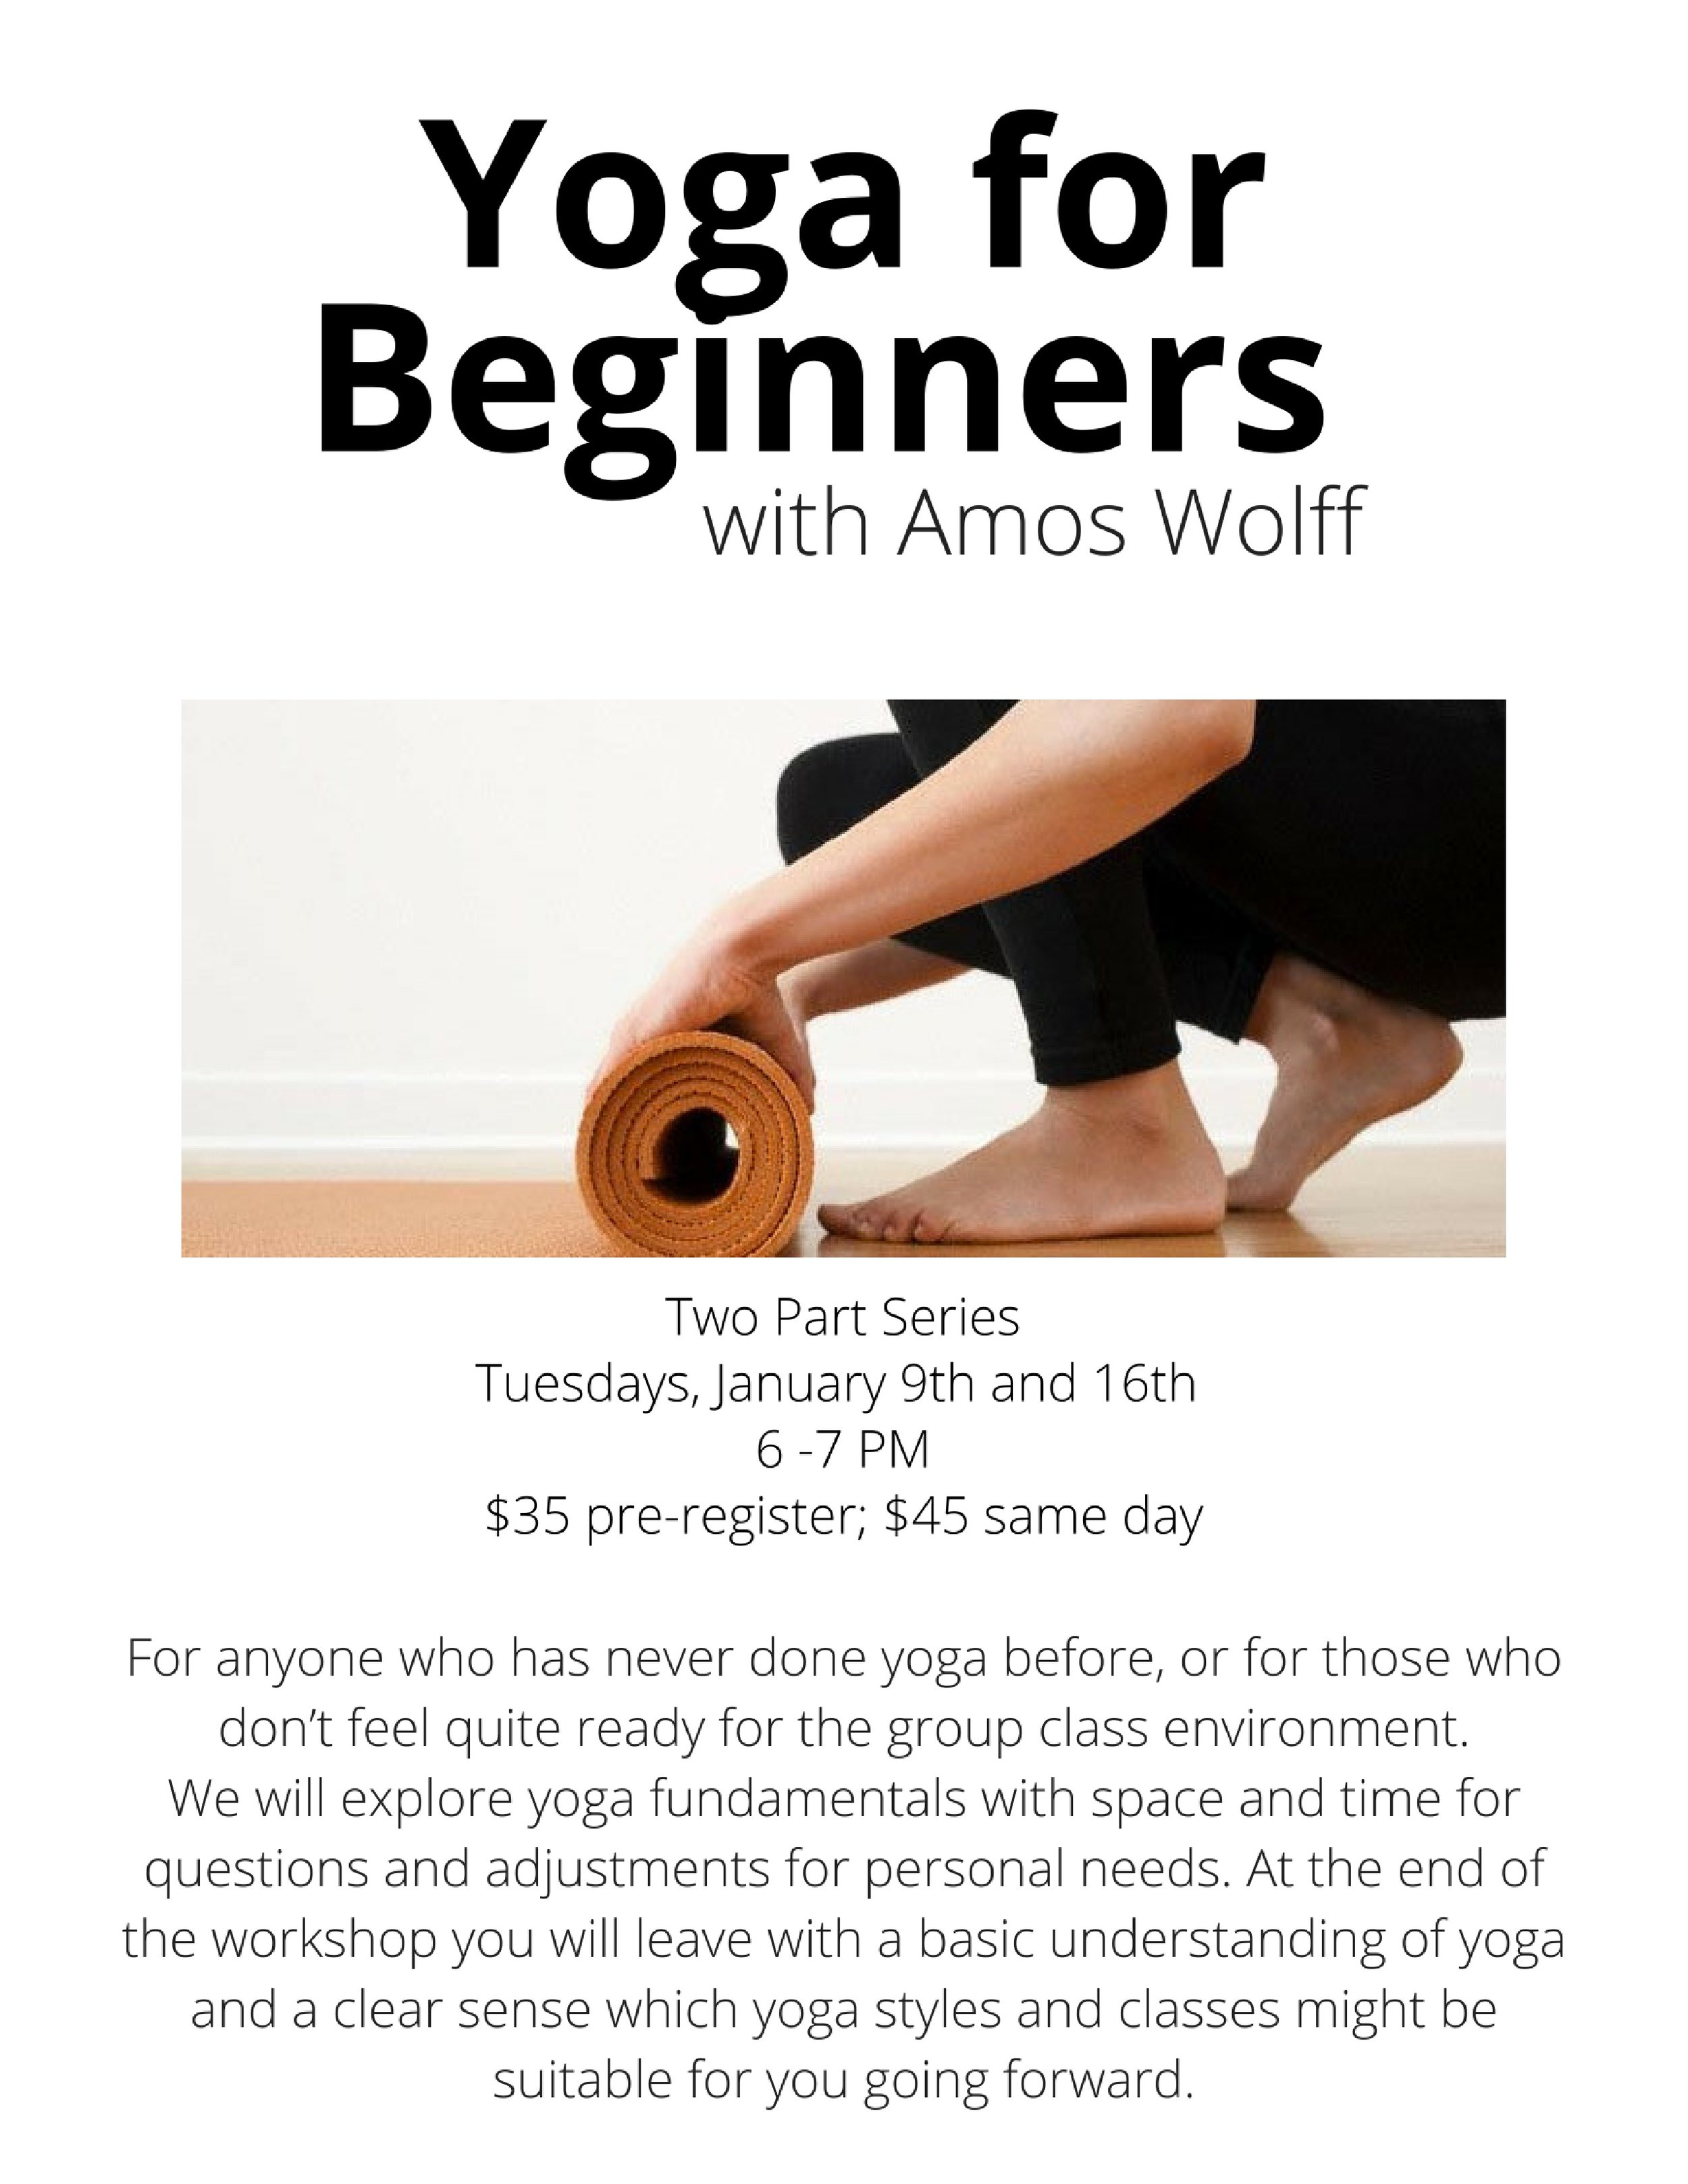 Yoga for Beginners with Amos WolffTuesdays%2c January 9 and 16 (two-part series)$35 pre-register%3b $45 same dayFor anyone who has never done yoga before%2c or for those who don't feel quite ready for the group class envir (1) copy.jpg